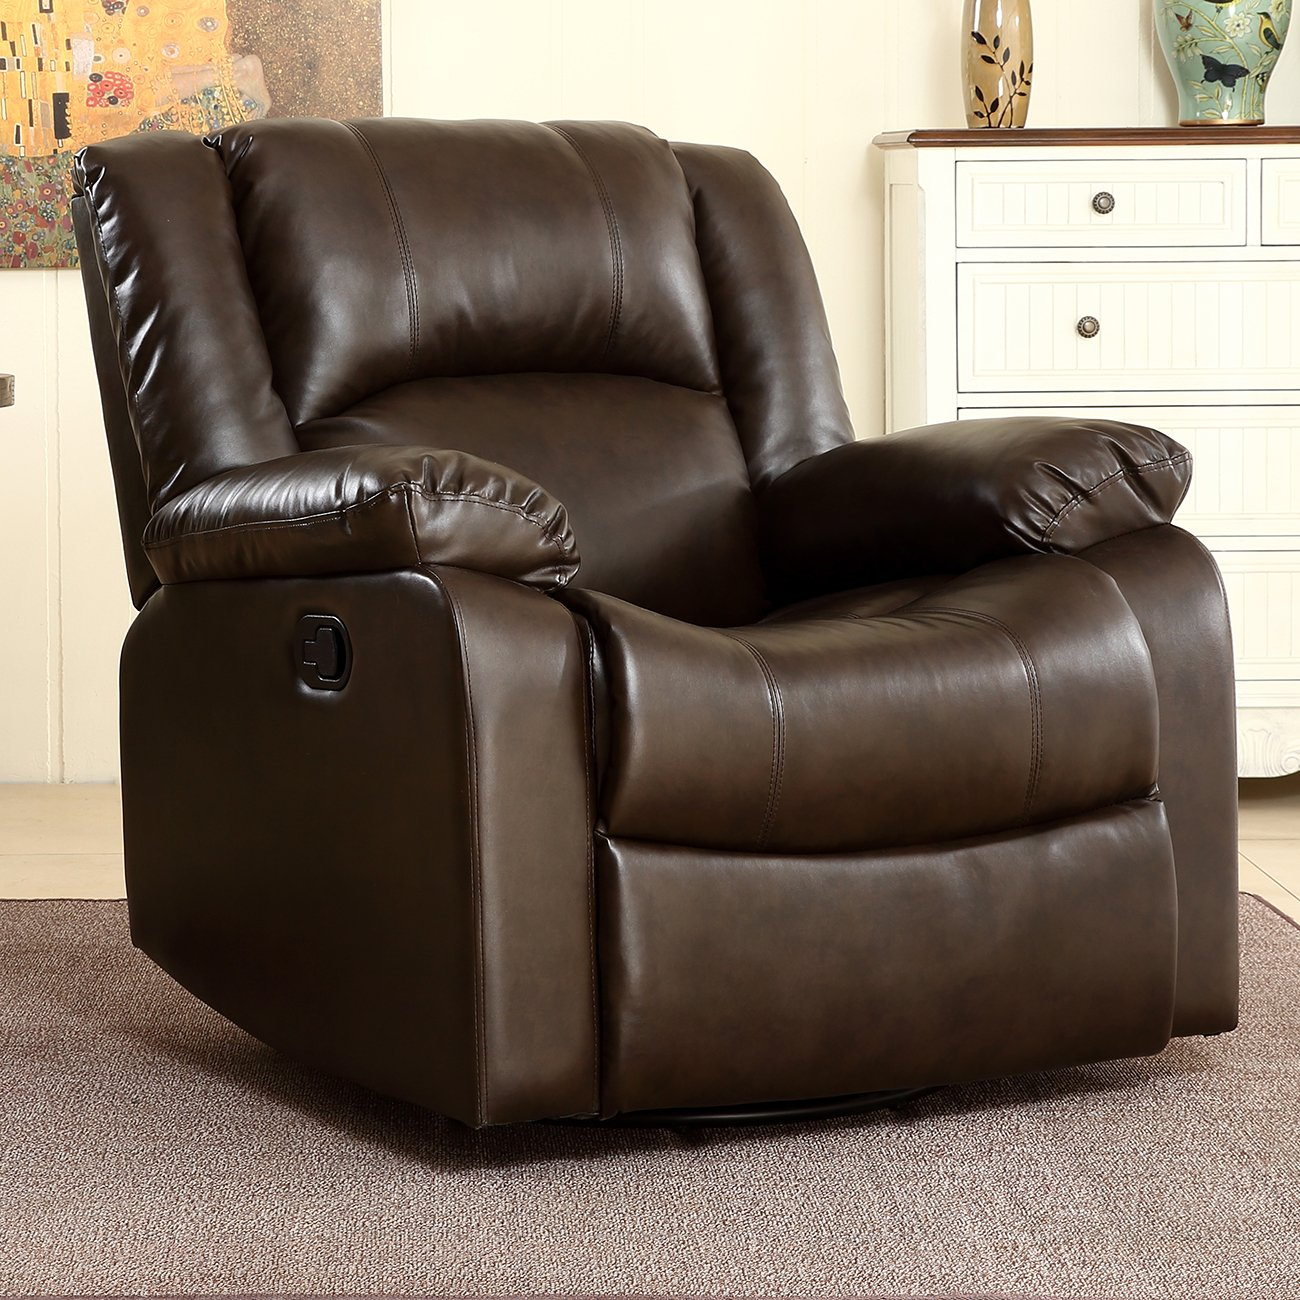 Belleze Faux Leather Rocker and Swivel Glider Recliner Living Room Chair (Brown)